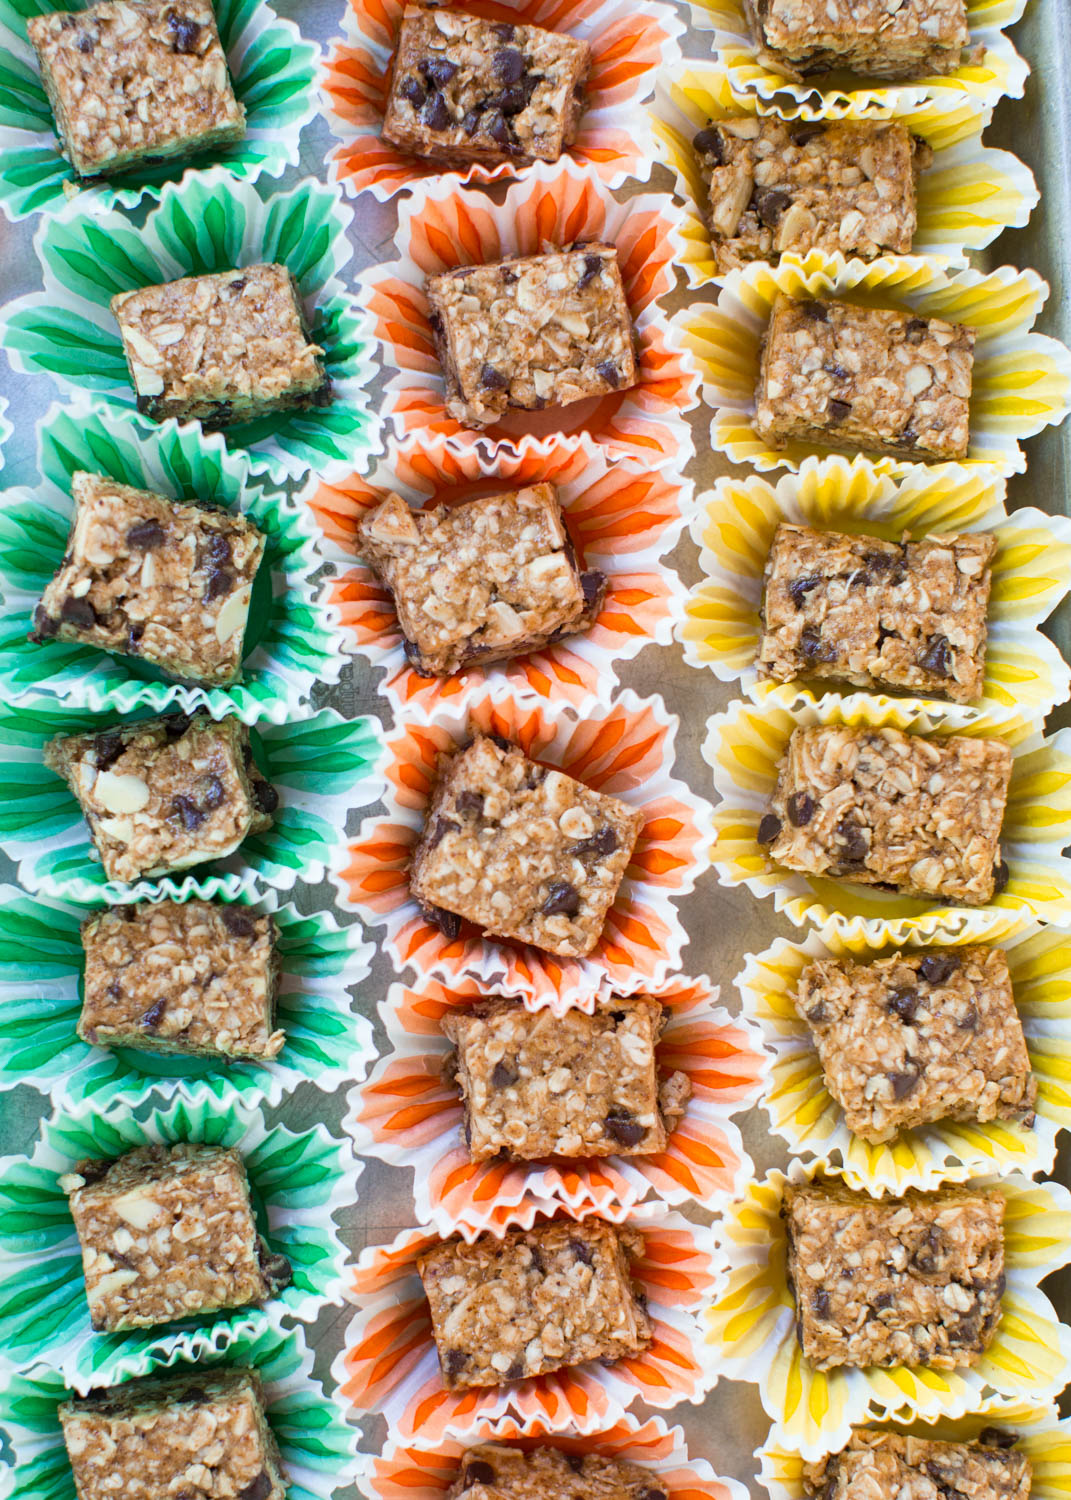 TAGG: Healthy Snack Recipes